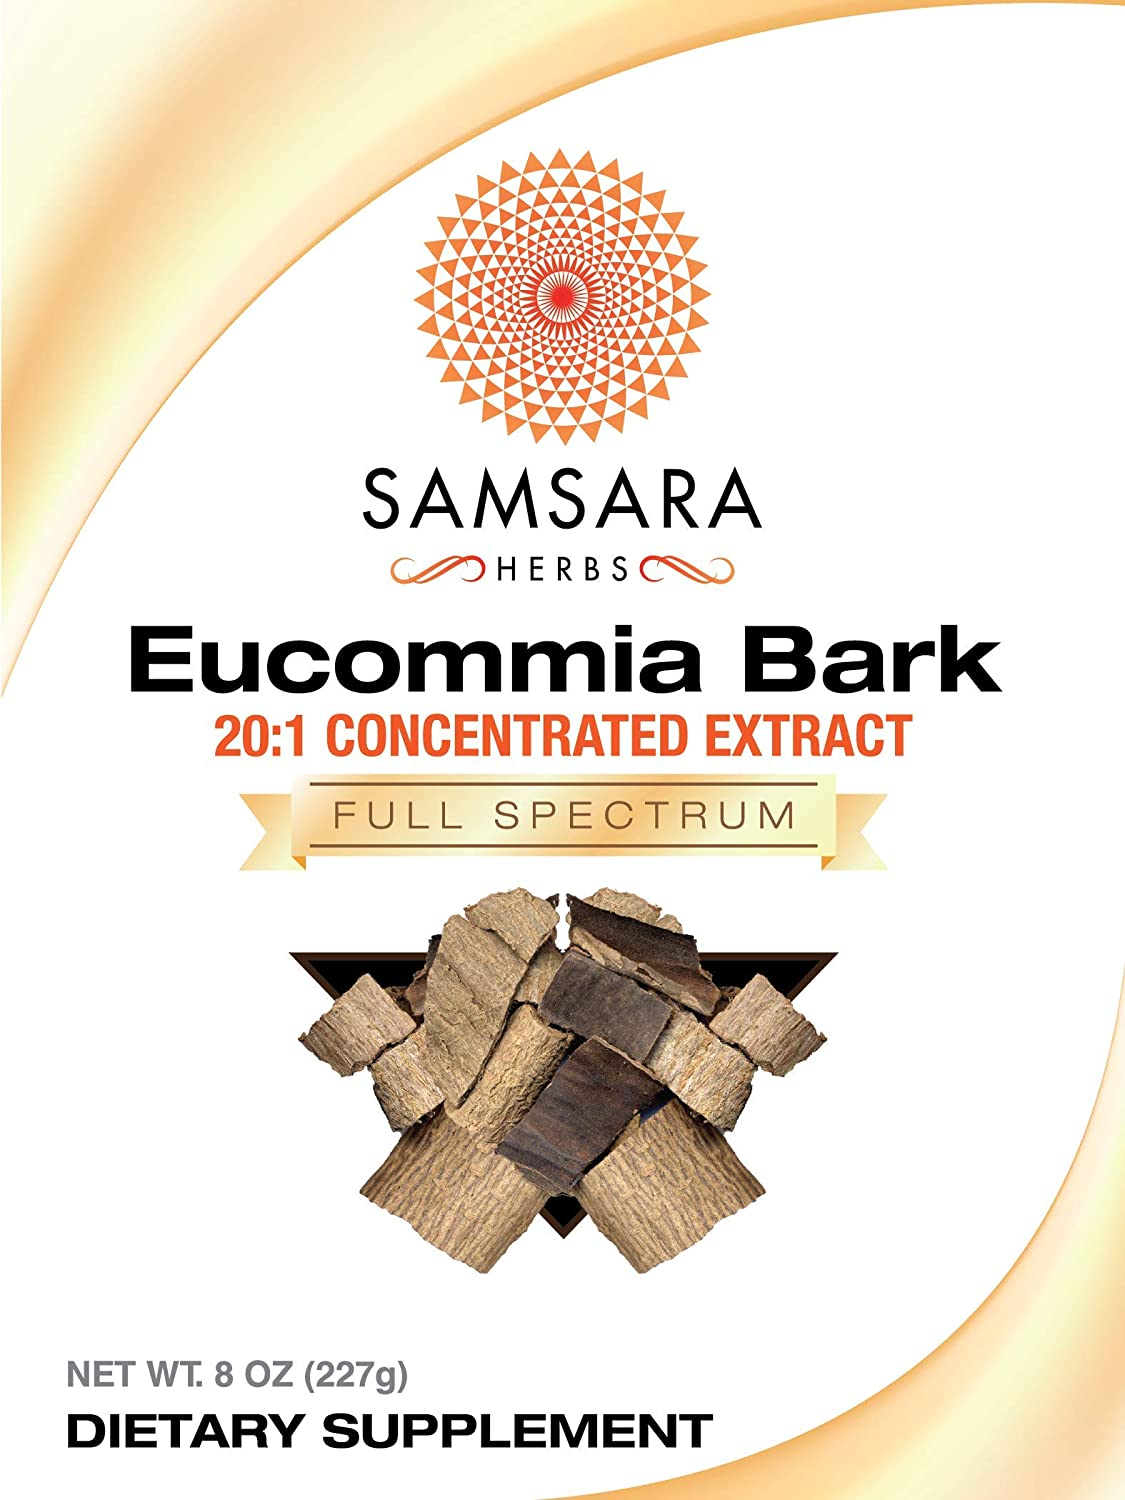 Samsara Herbs Eucommia Extract Powder – 20 1 Concentrated Extract 8oz 227g